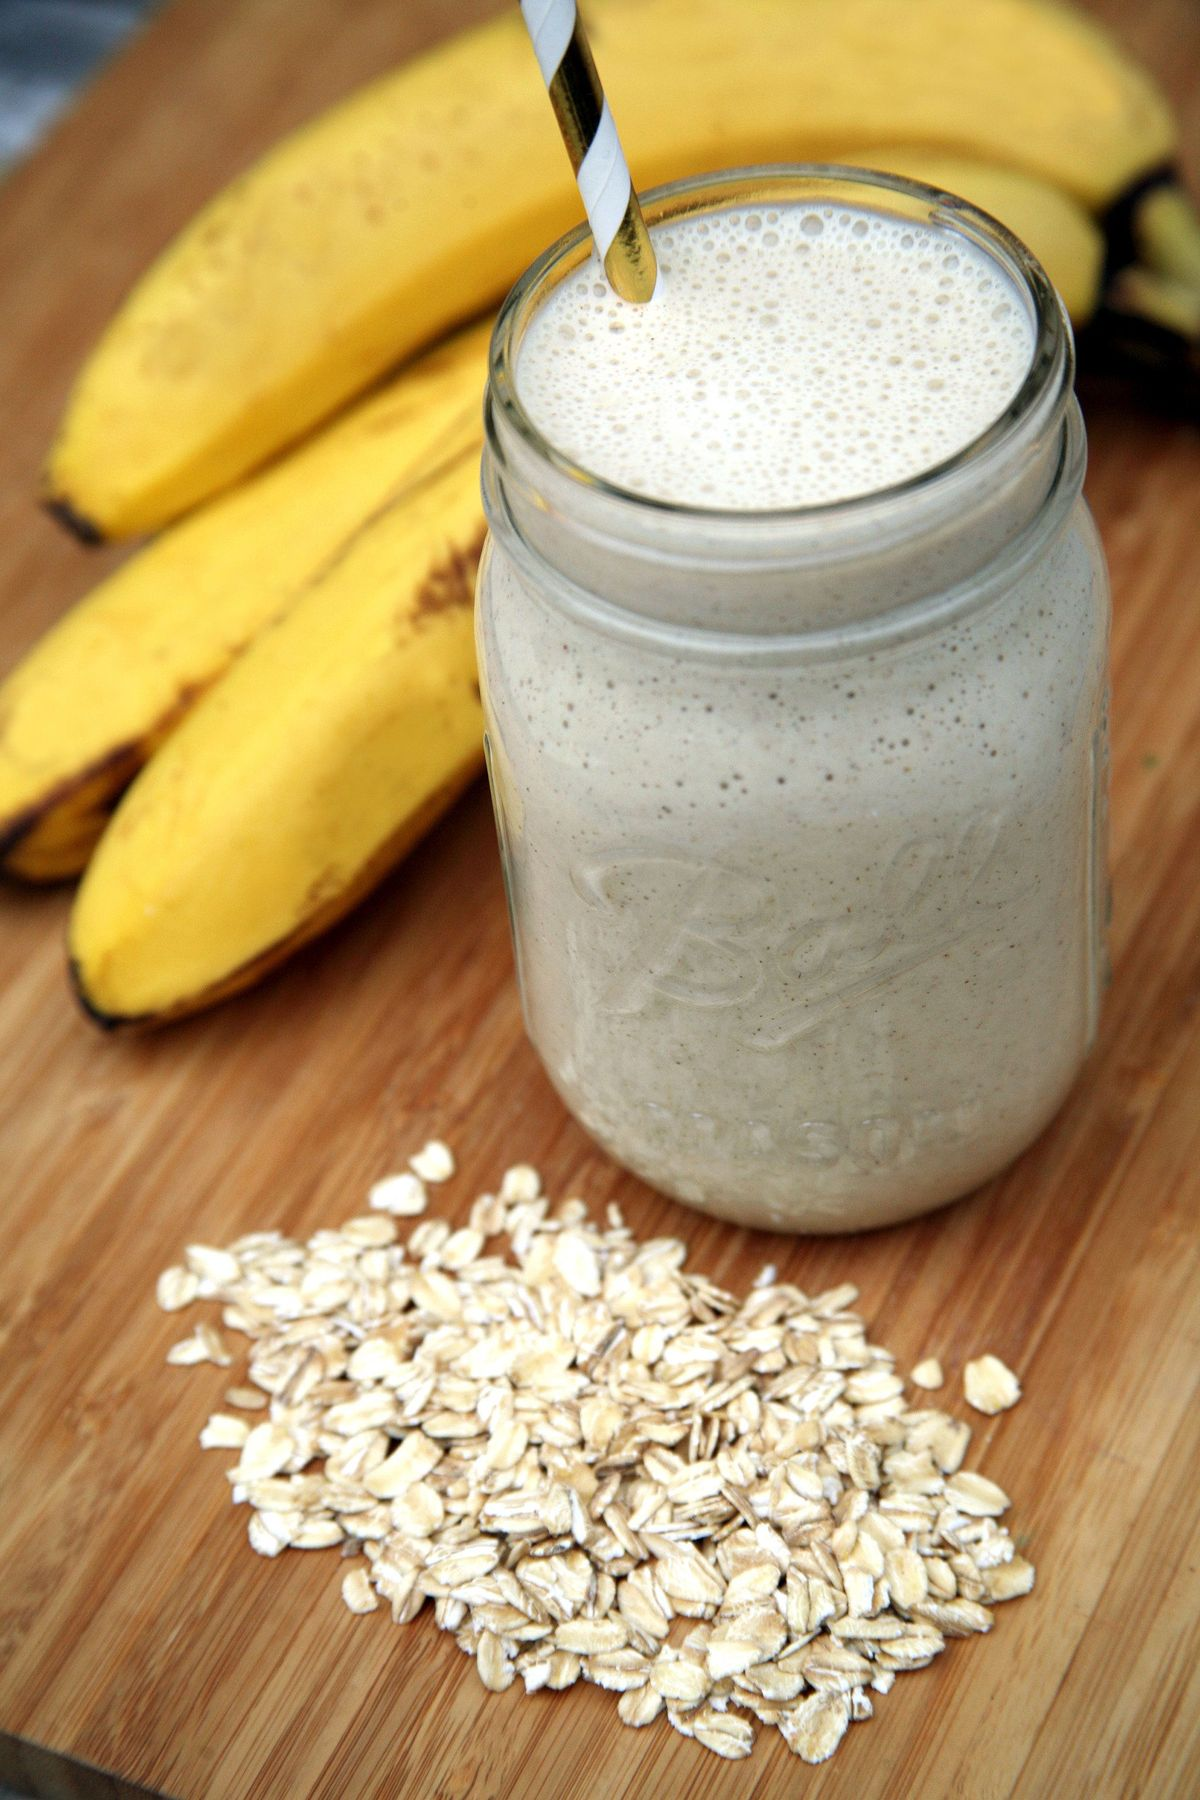 Add Oats to Smoothie to Make More Filling For Weight Loss | POPSUGAR Fitness